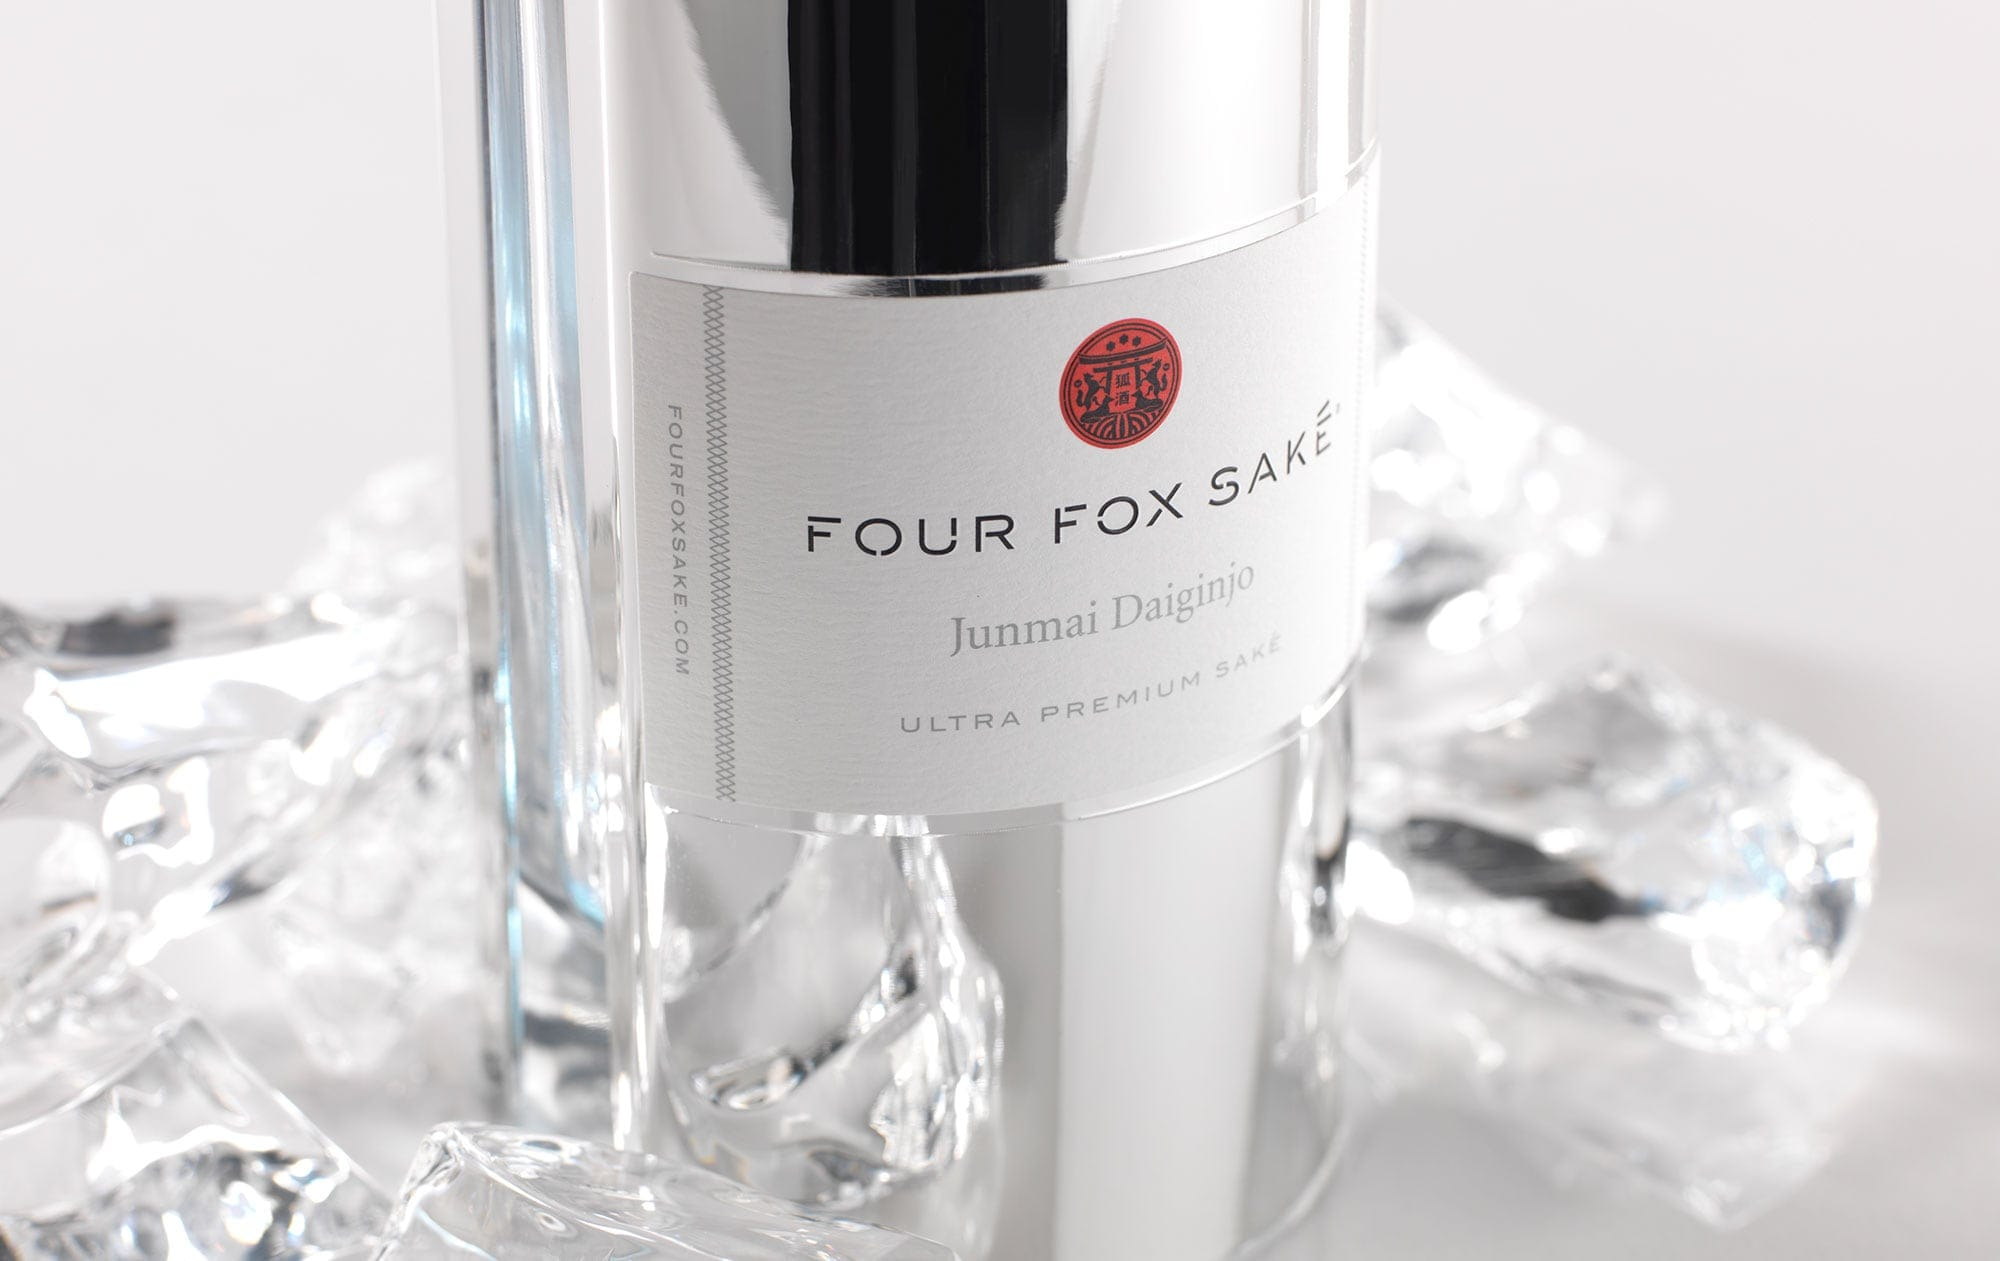 Four_Fox Sake Packaging Design